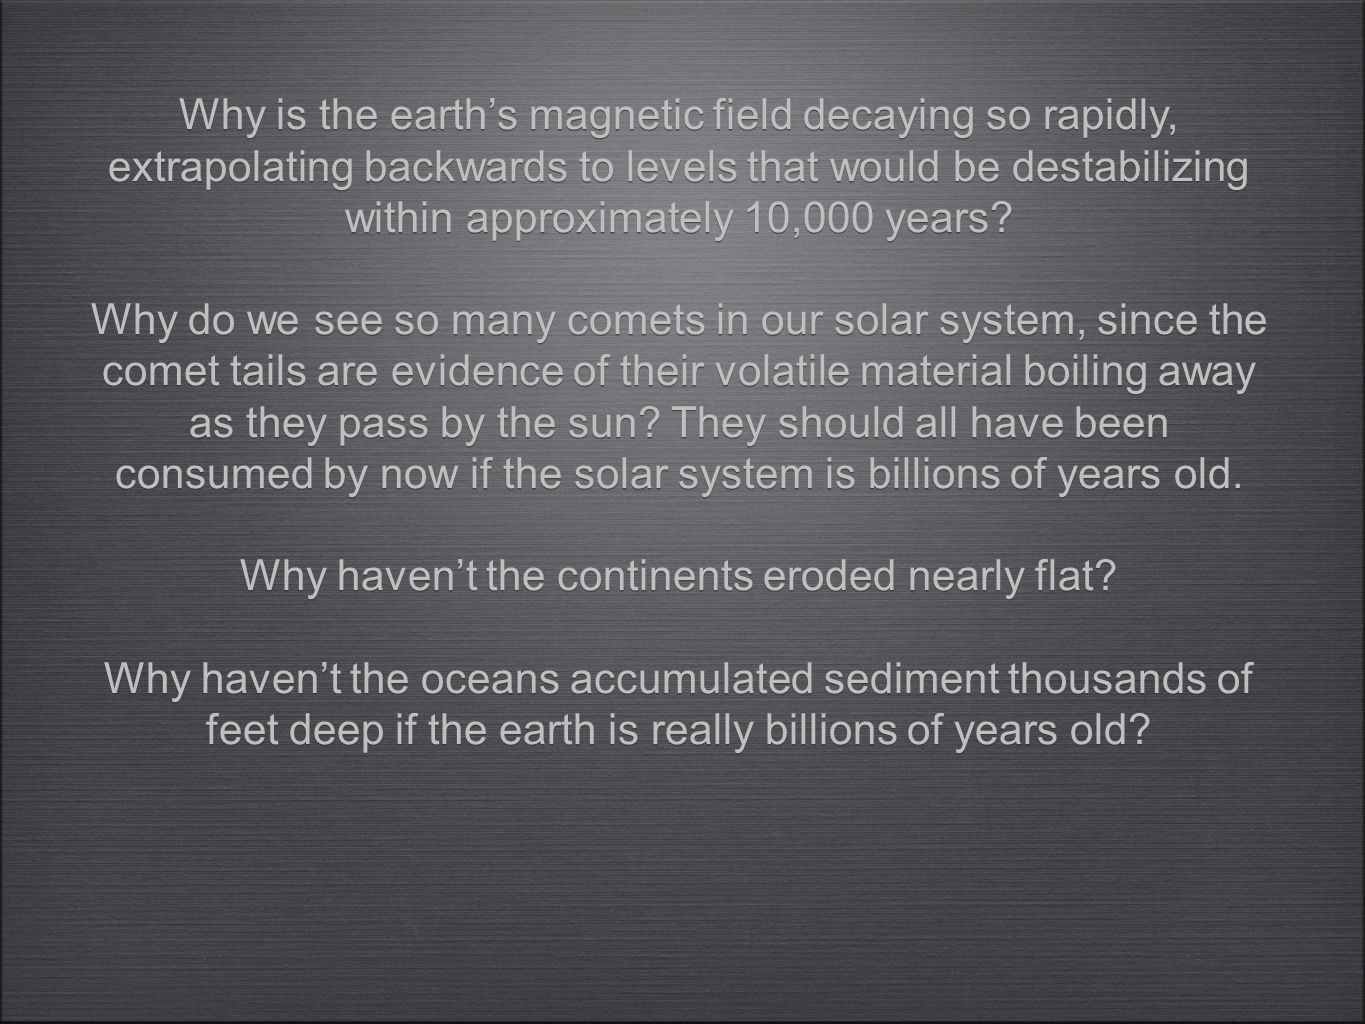 Why is the earth's magnetic field decaying so rapidly, extrapolating backwards to levels that would be destabilizing within approximately 10,000 years.